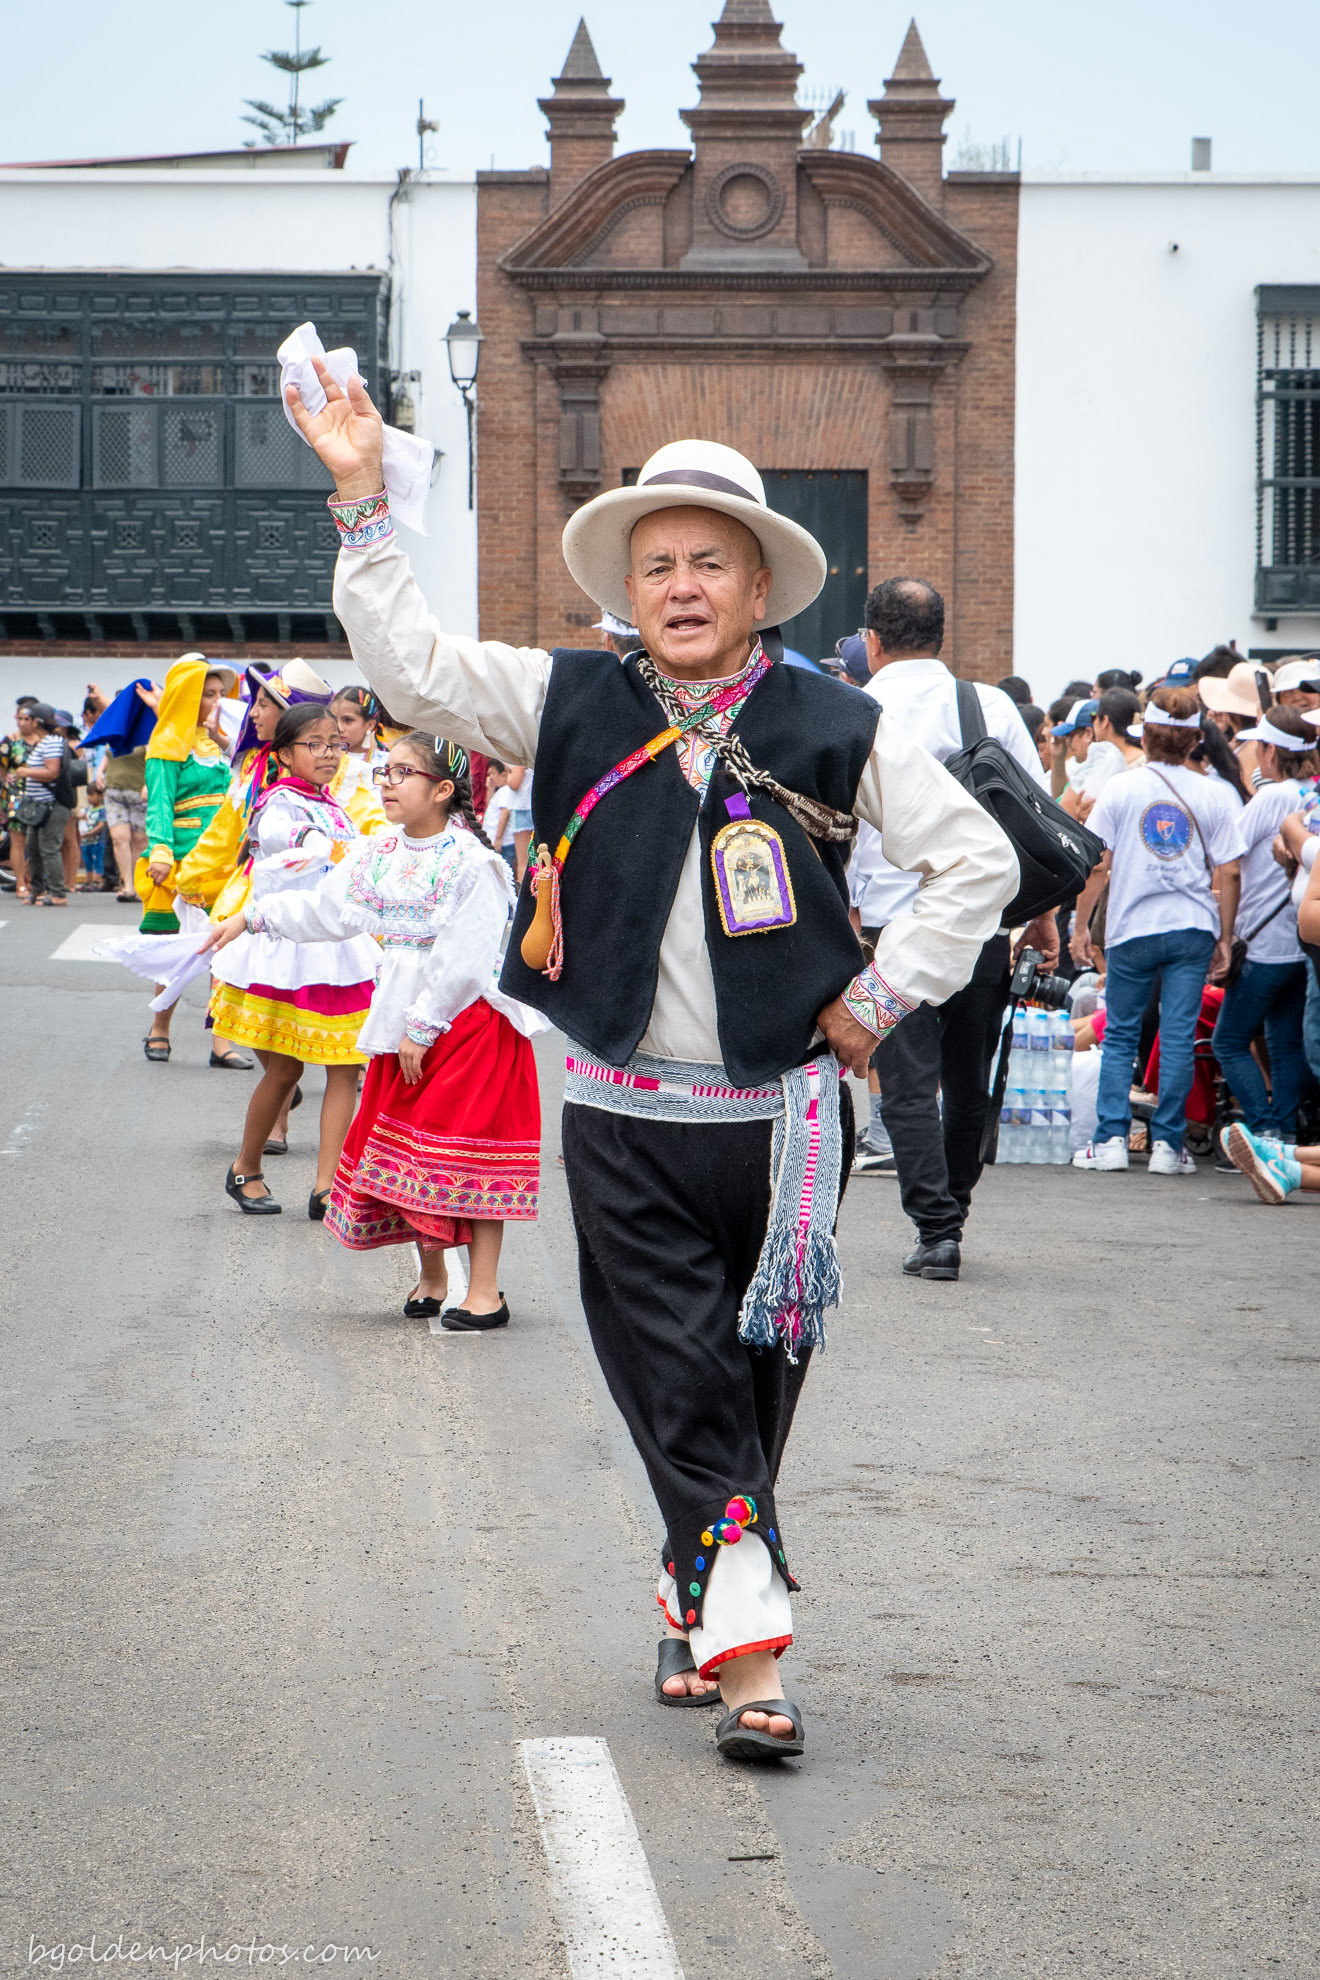 Participant in the Parade of the Festival of Marinera 2020 Trujillo Peru